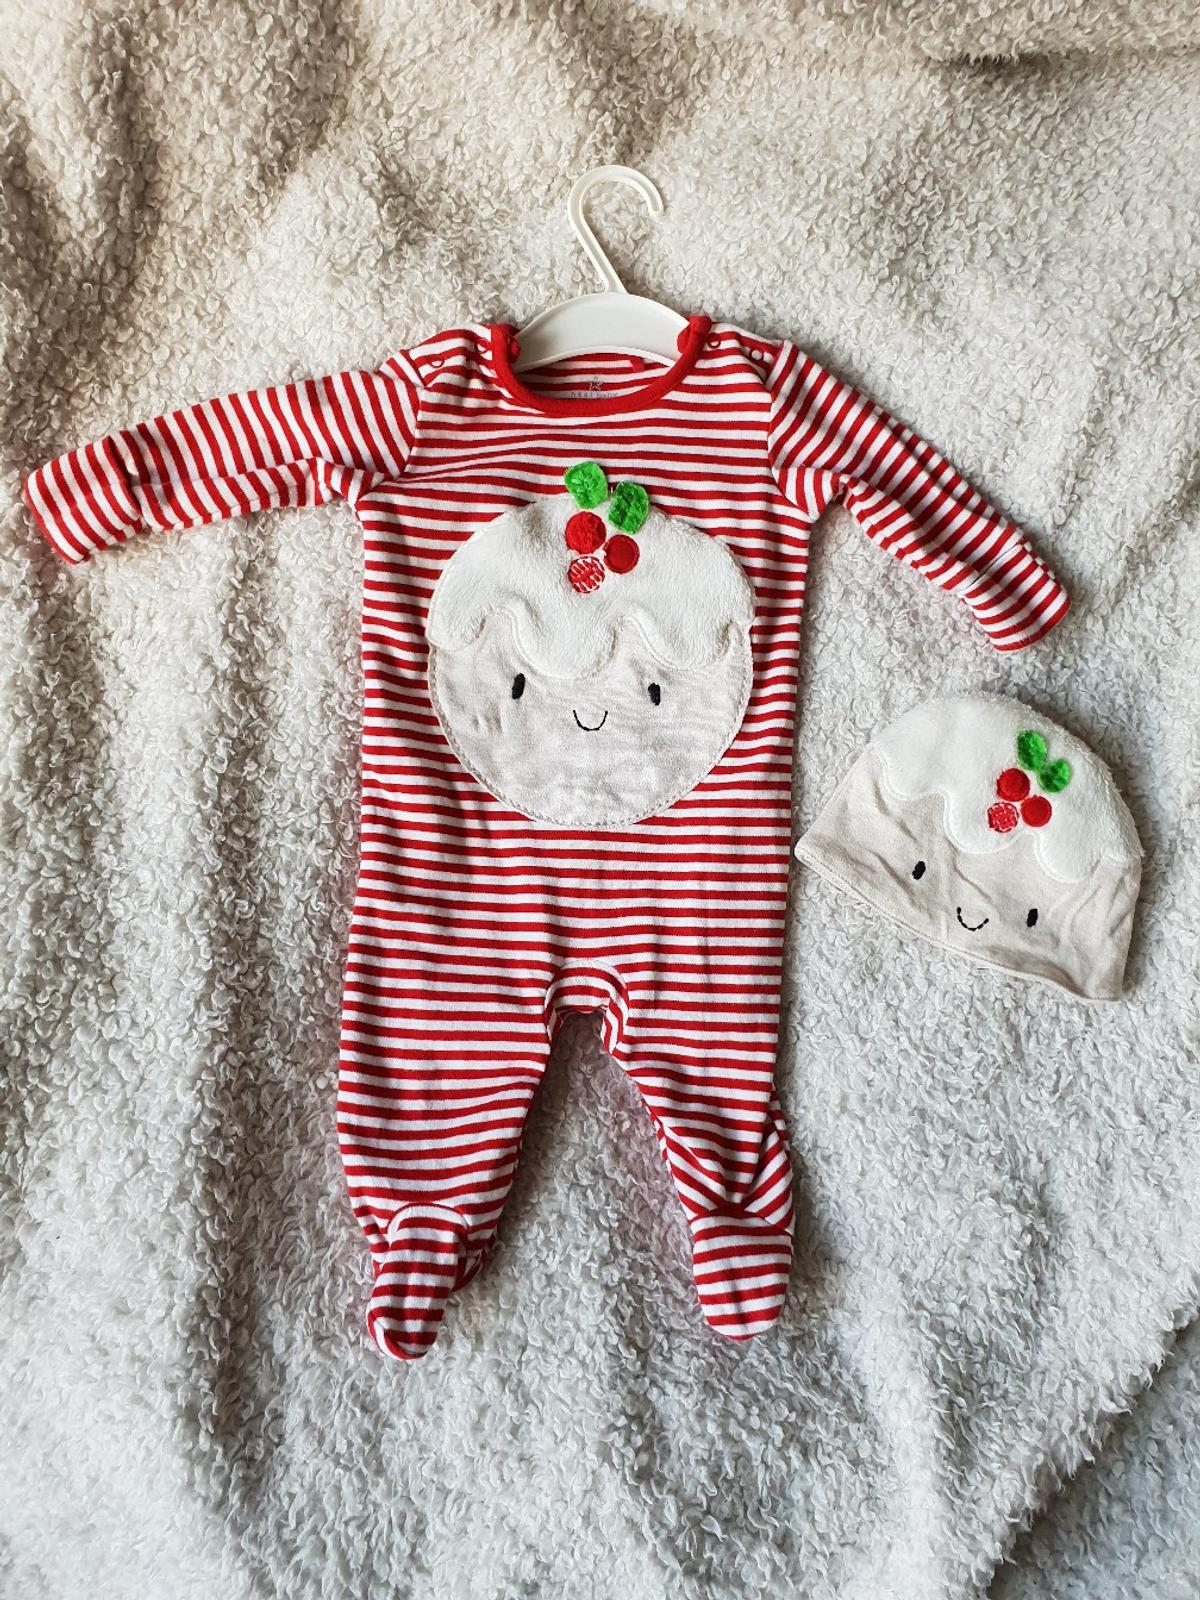 Christmas Pudding Baby Outfit.Baby Christmas Pudding Outfit In Br2 London For 2 50 For